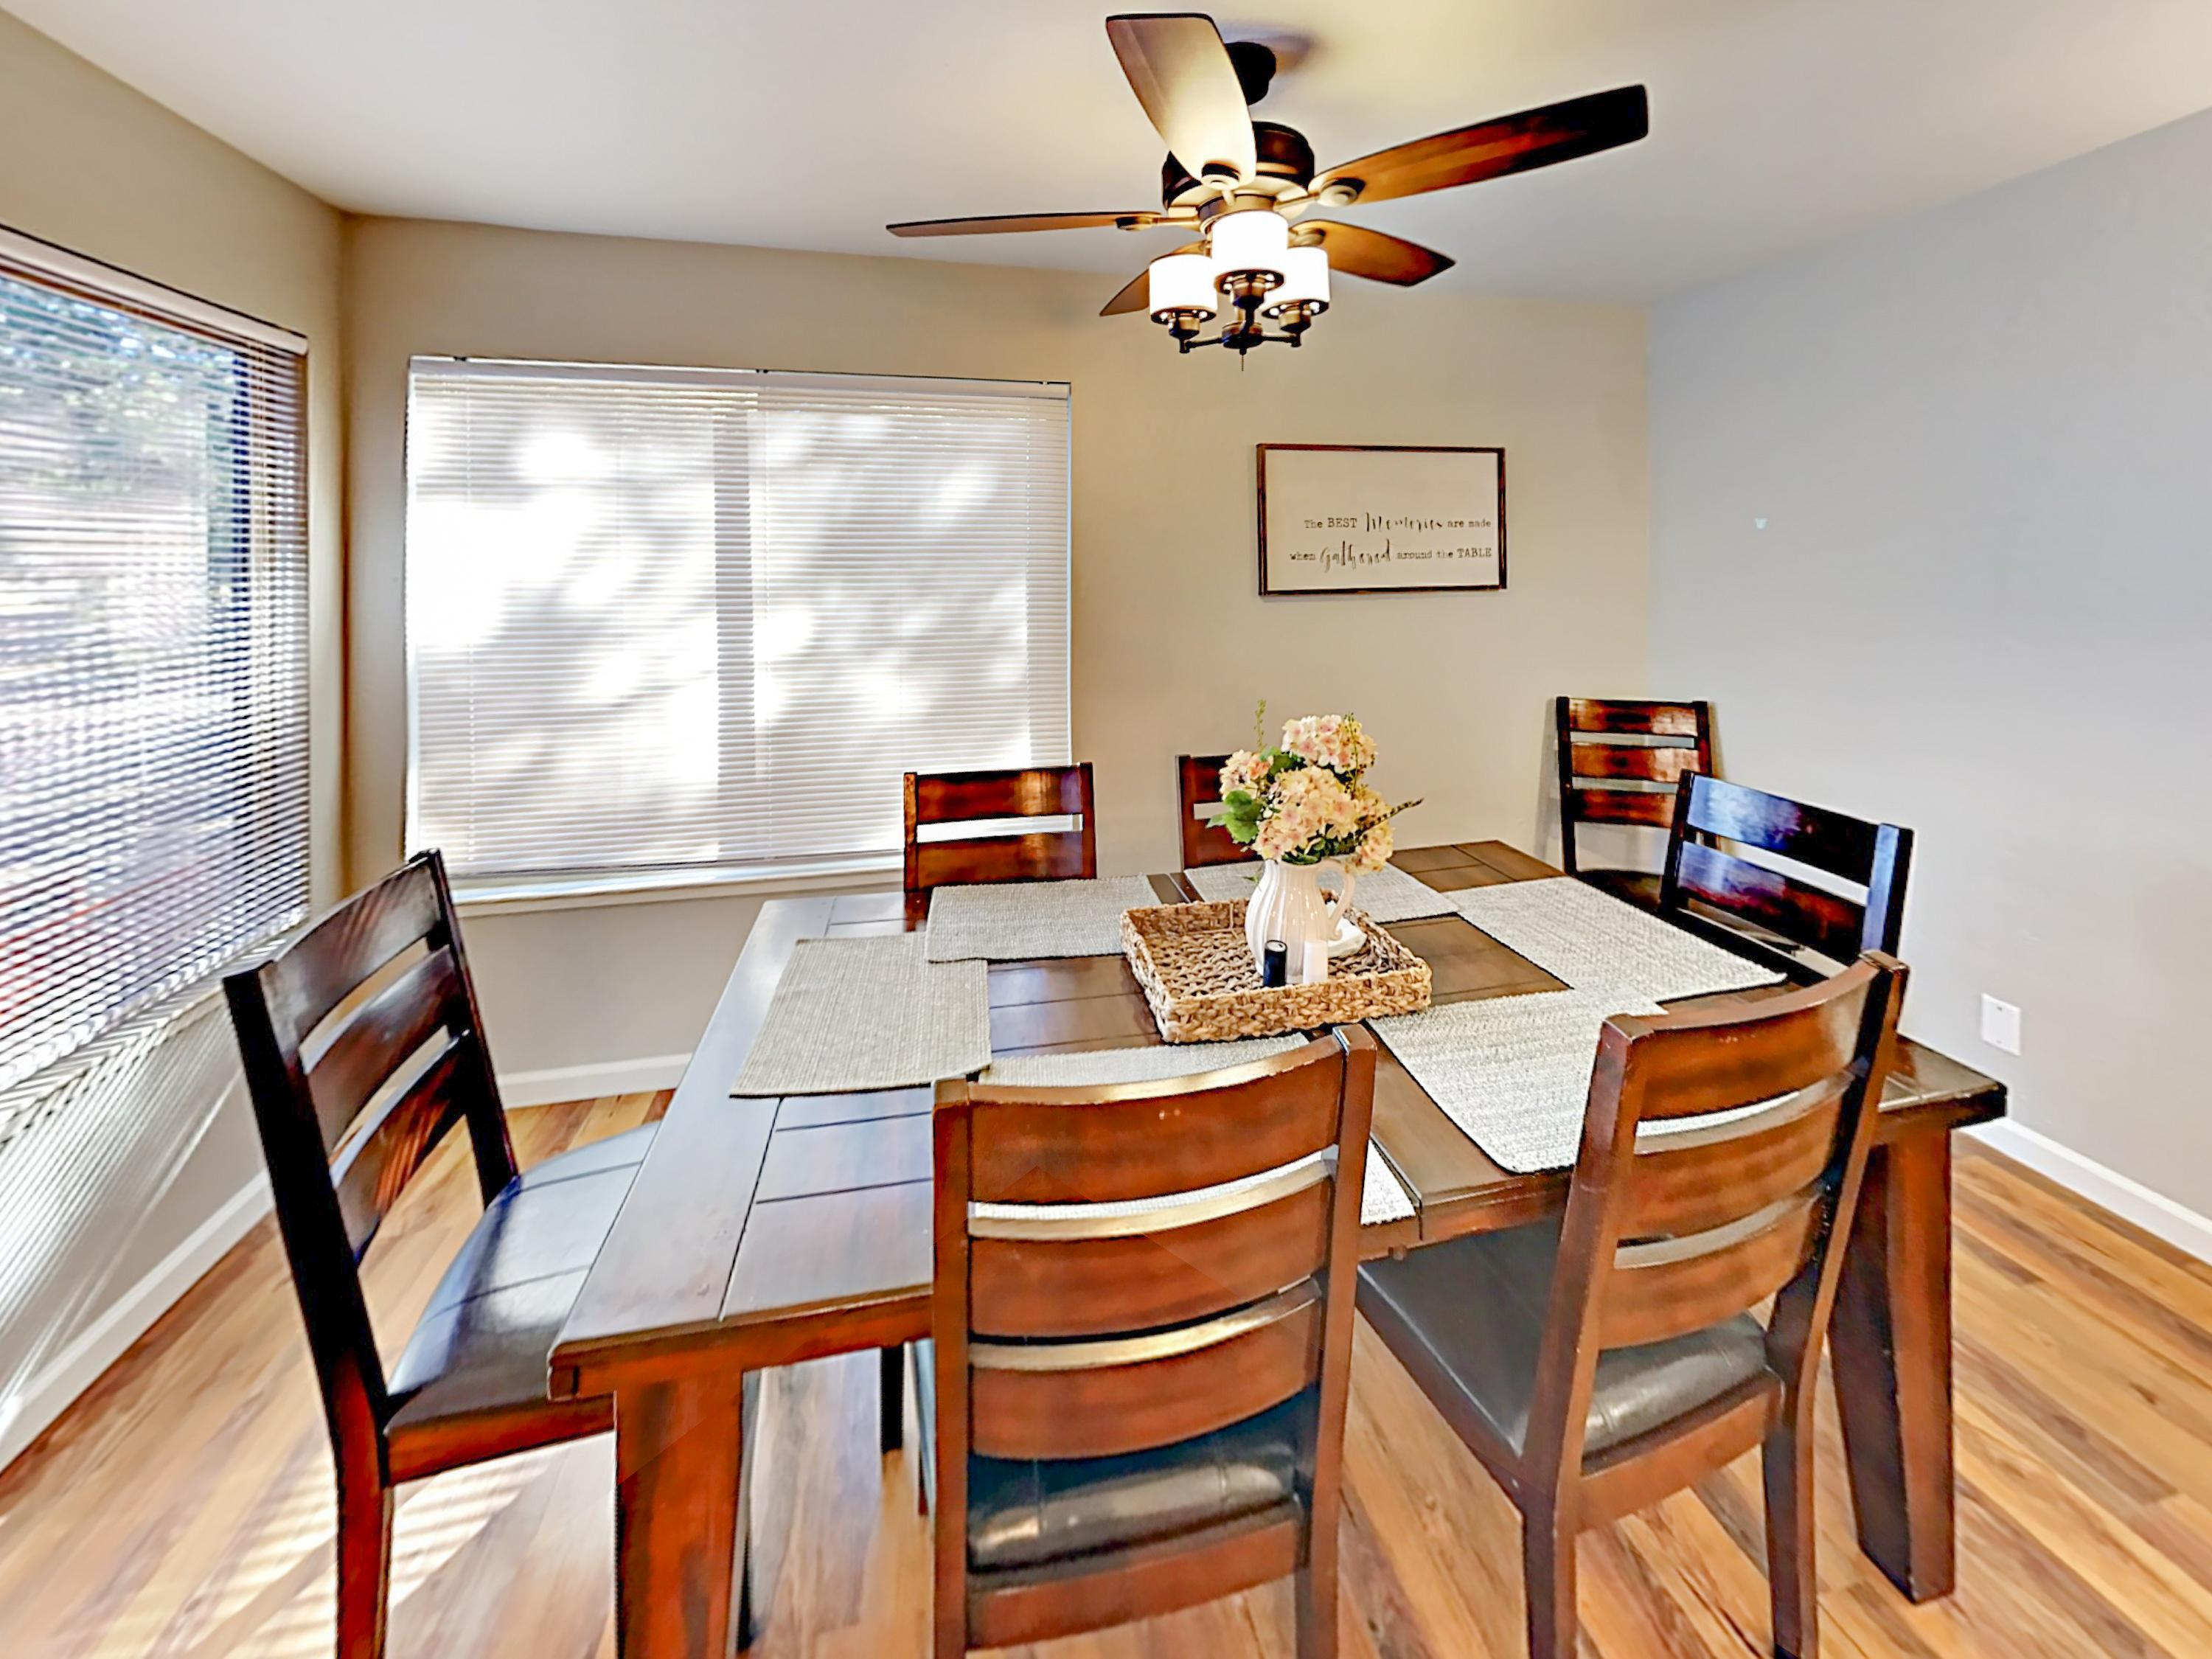 Serve home-cooked meals at the dining table with seating for 6.